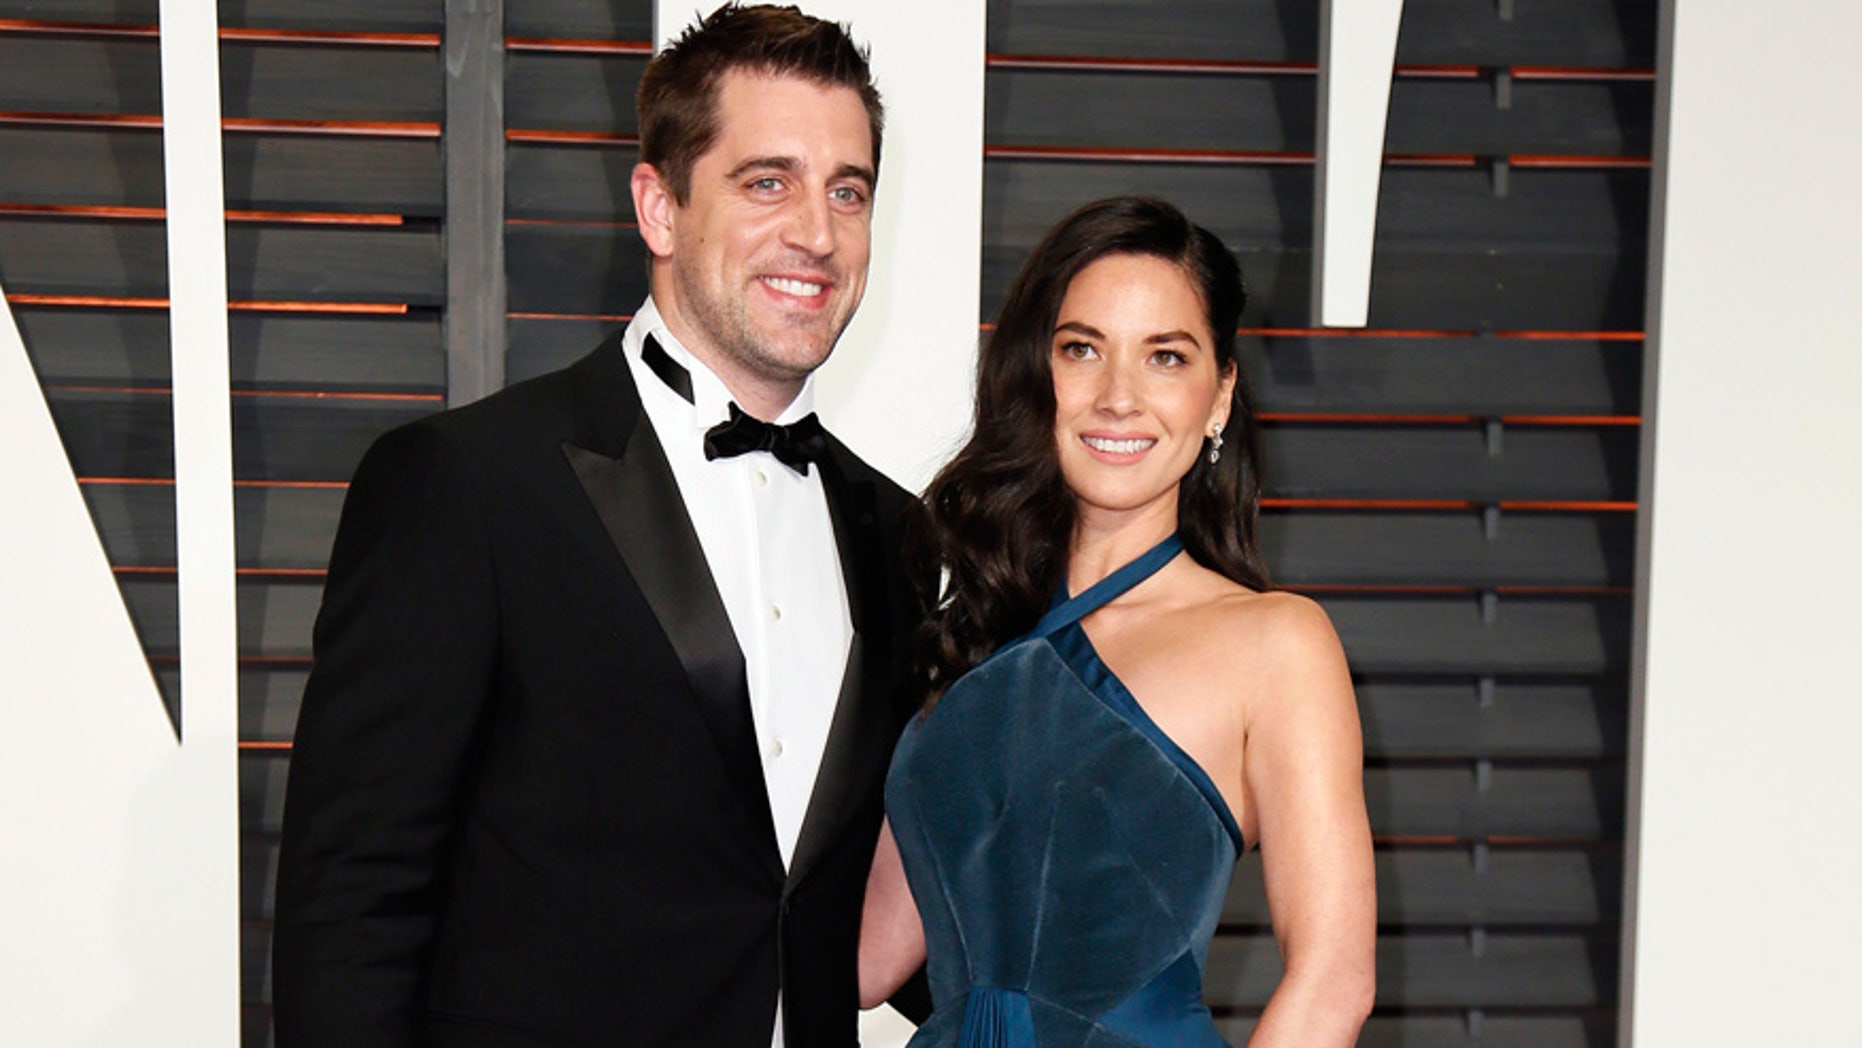 NFL football player Aaron Rodgers and actress Olivia Munn arrive at the 2015 Vanity Fair Oscar Party in Beverly Hills, California February 22, 2015.